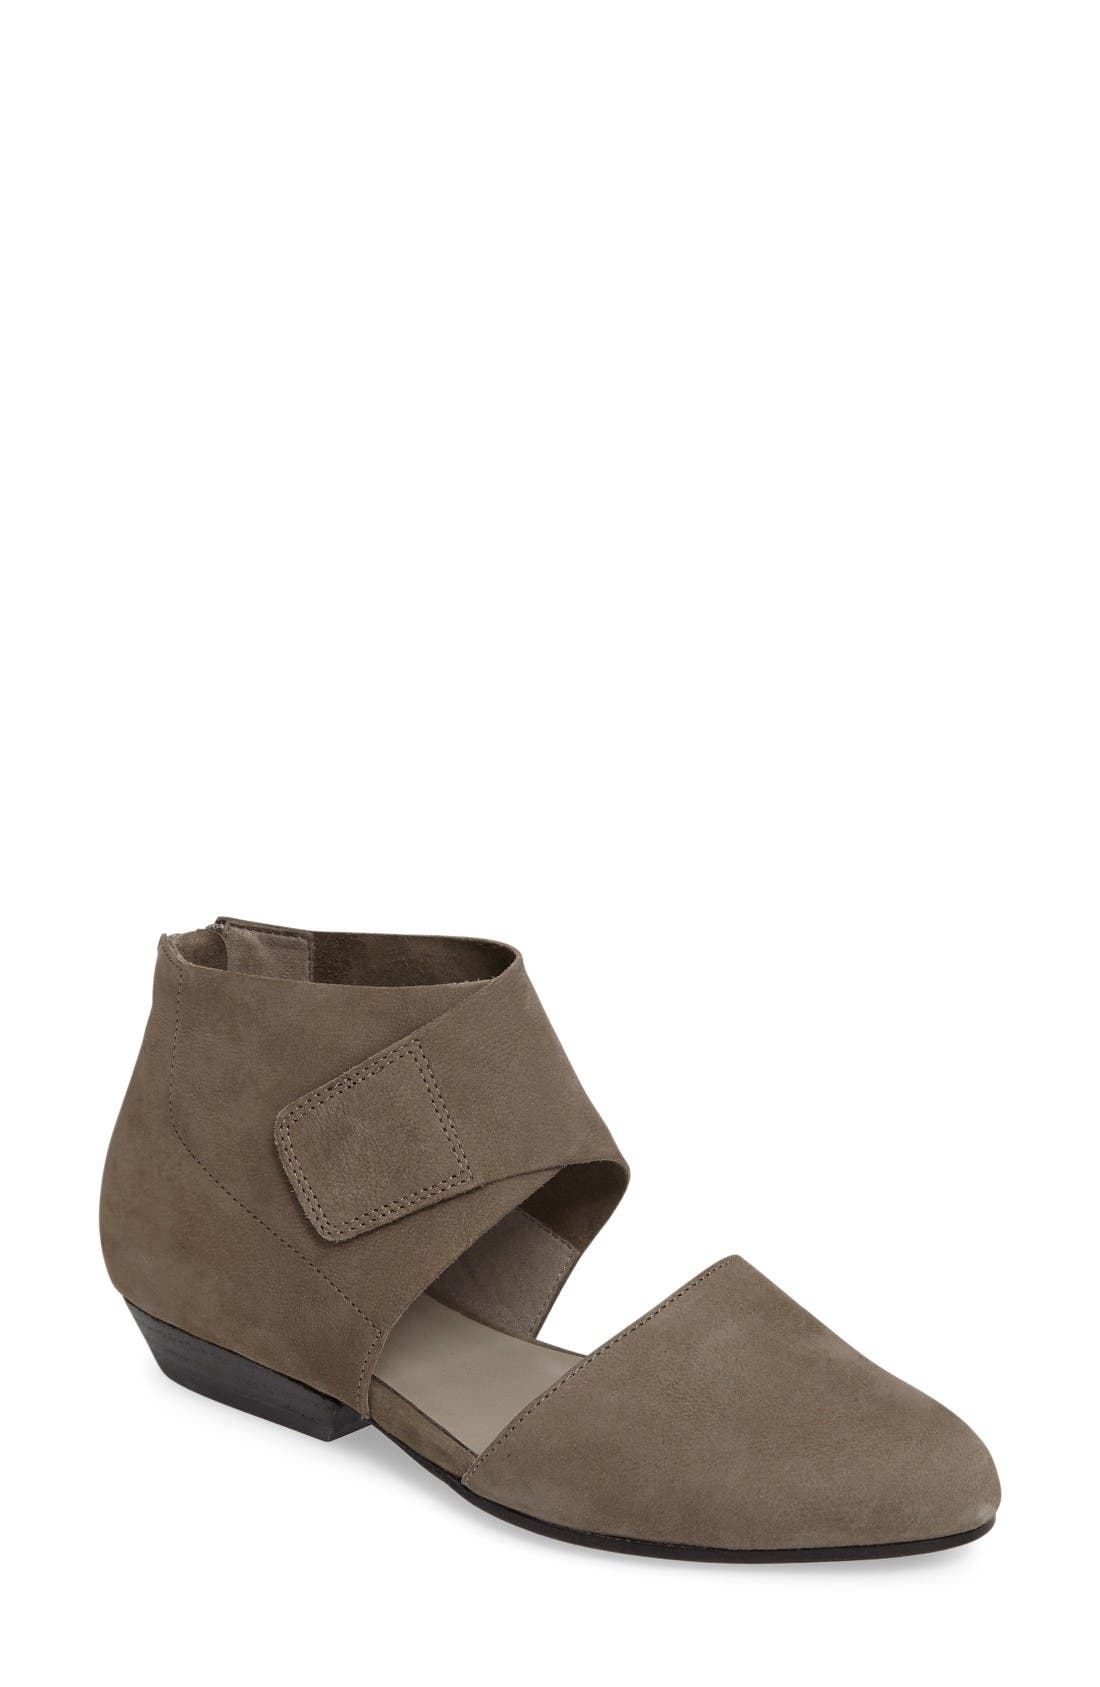 Alternate Image 1 Selected - Eileen Fisher Calia Ankle Cuffed Flat (Women)